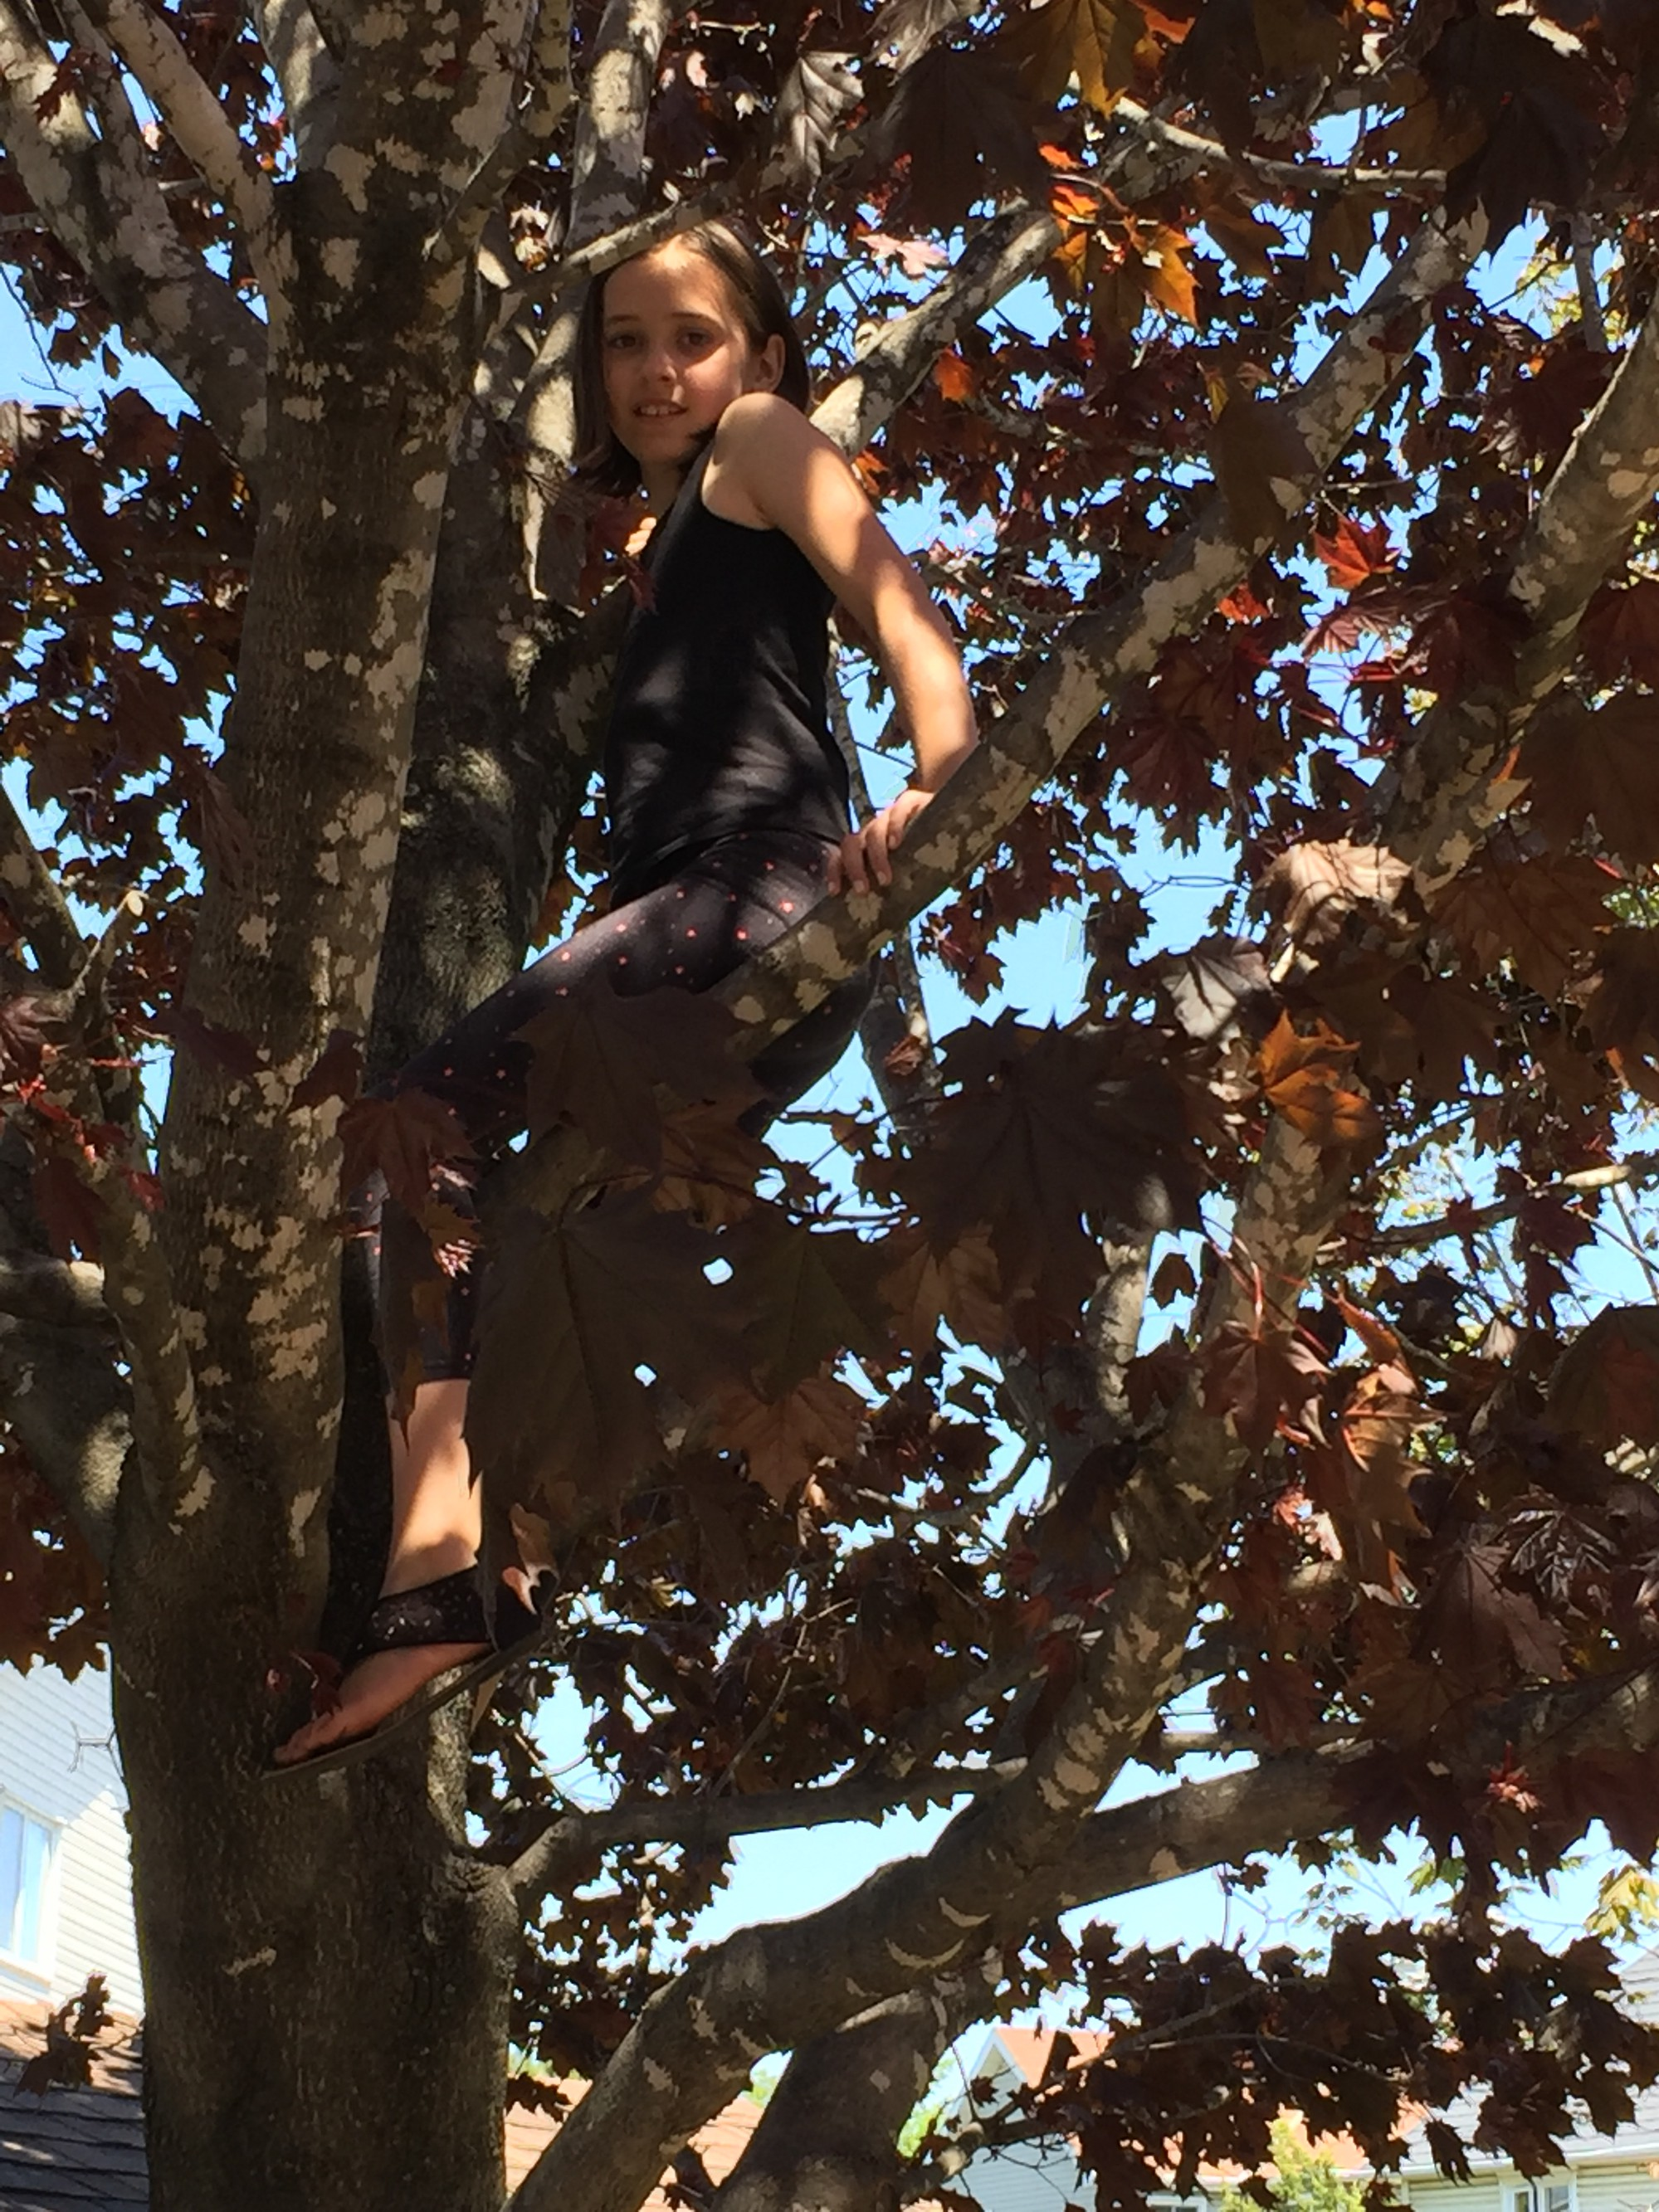 Its Amazing What Creatures One Finds Climbing High In The Trees This Time Of Year